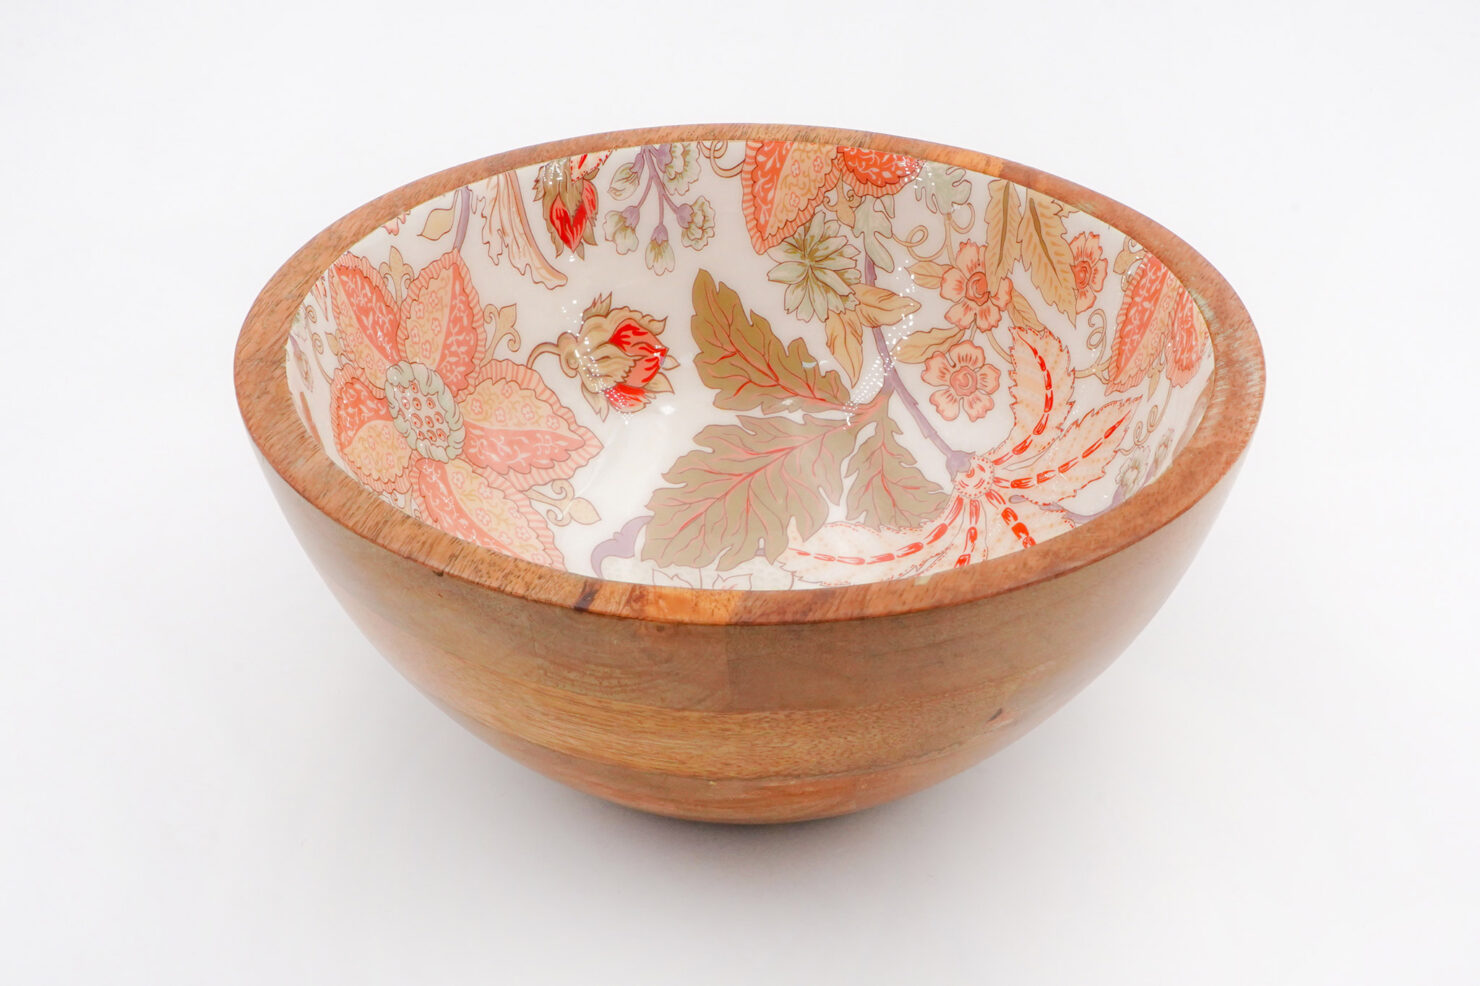 BOWL ORANGE FLOWER MANGO WOOD 25 CM - BY ROOM